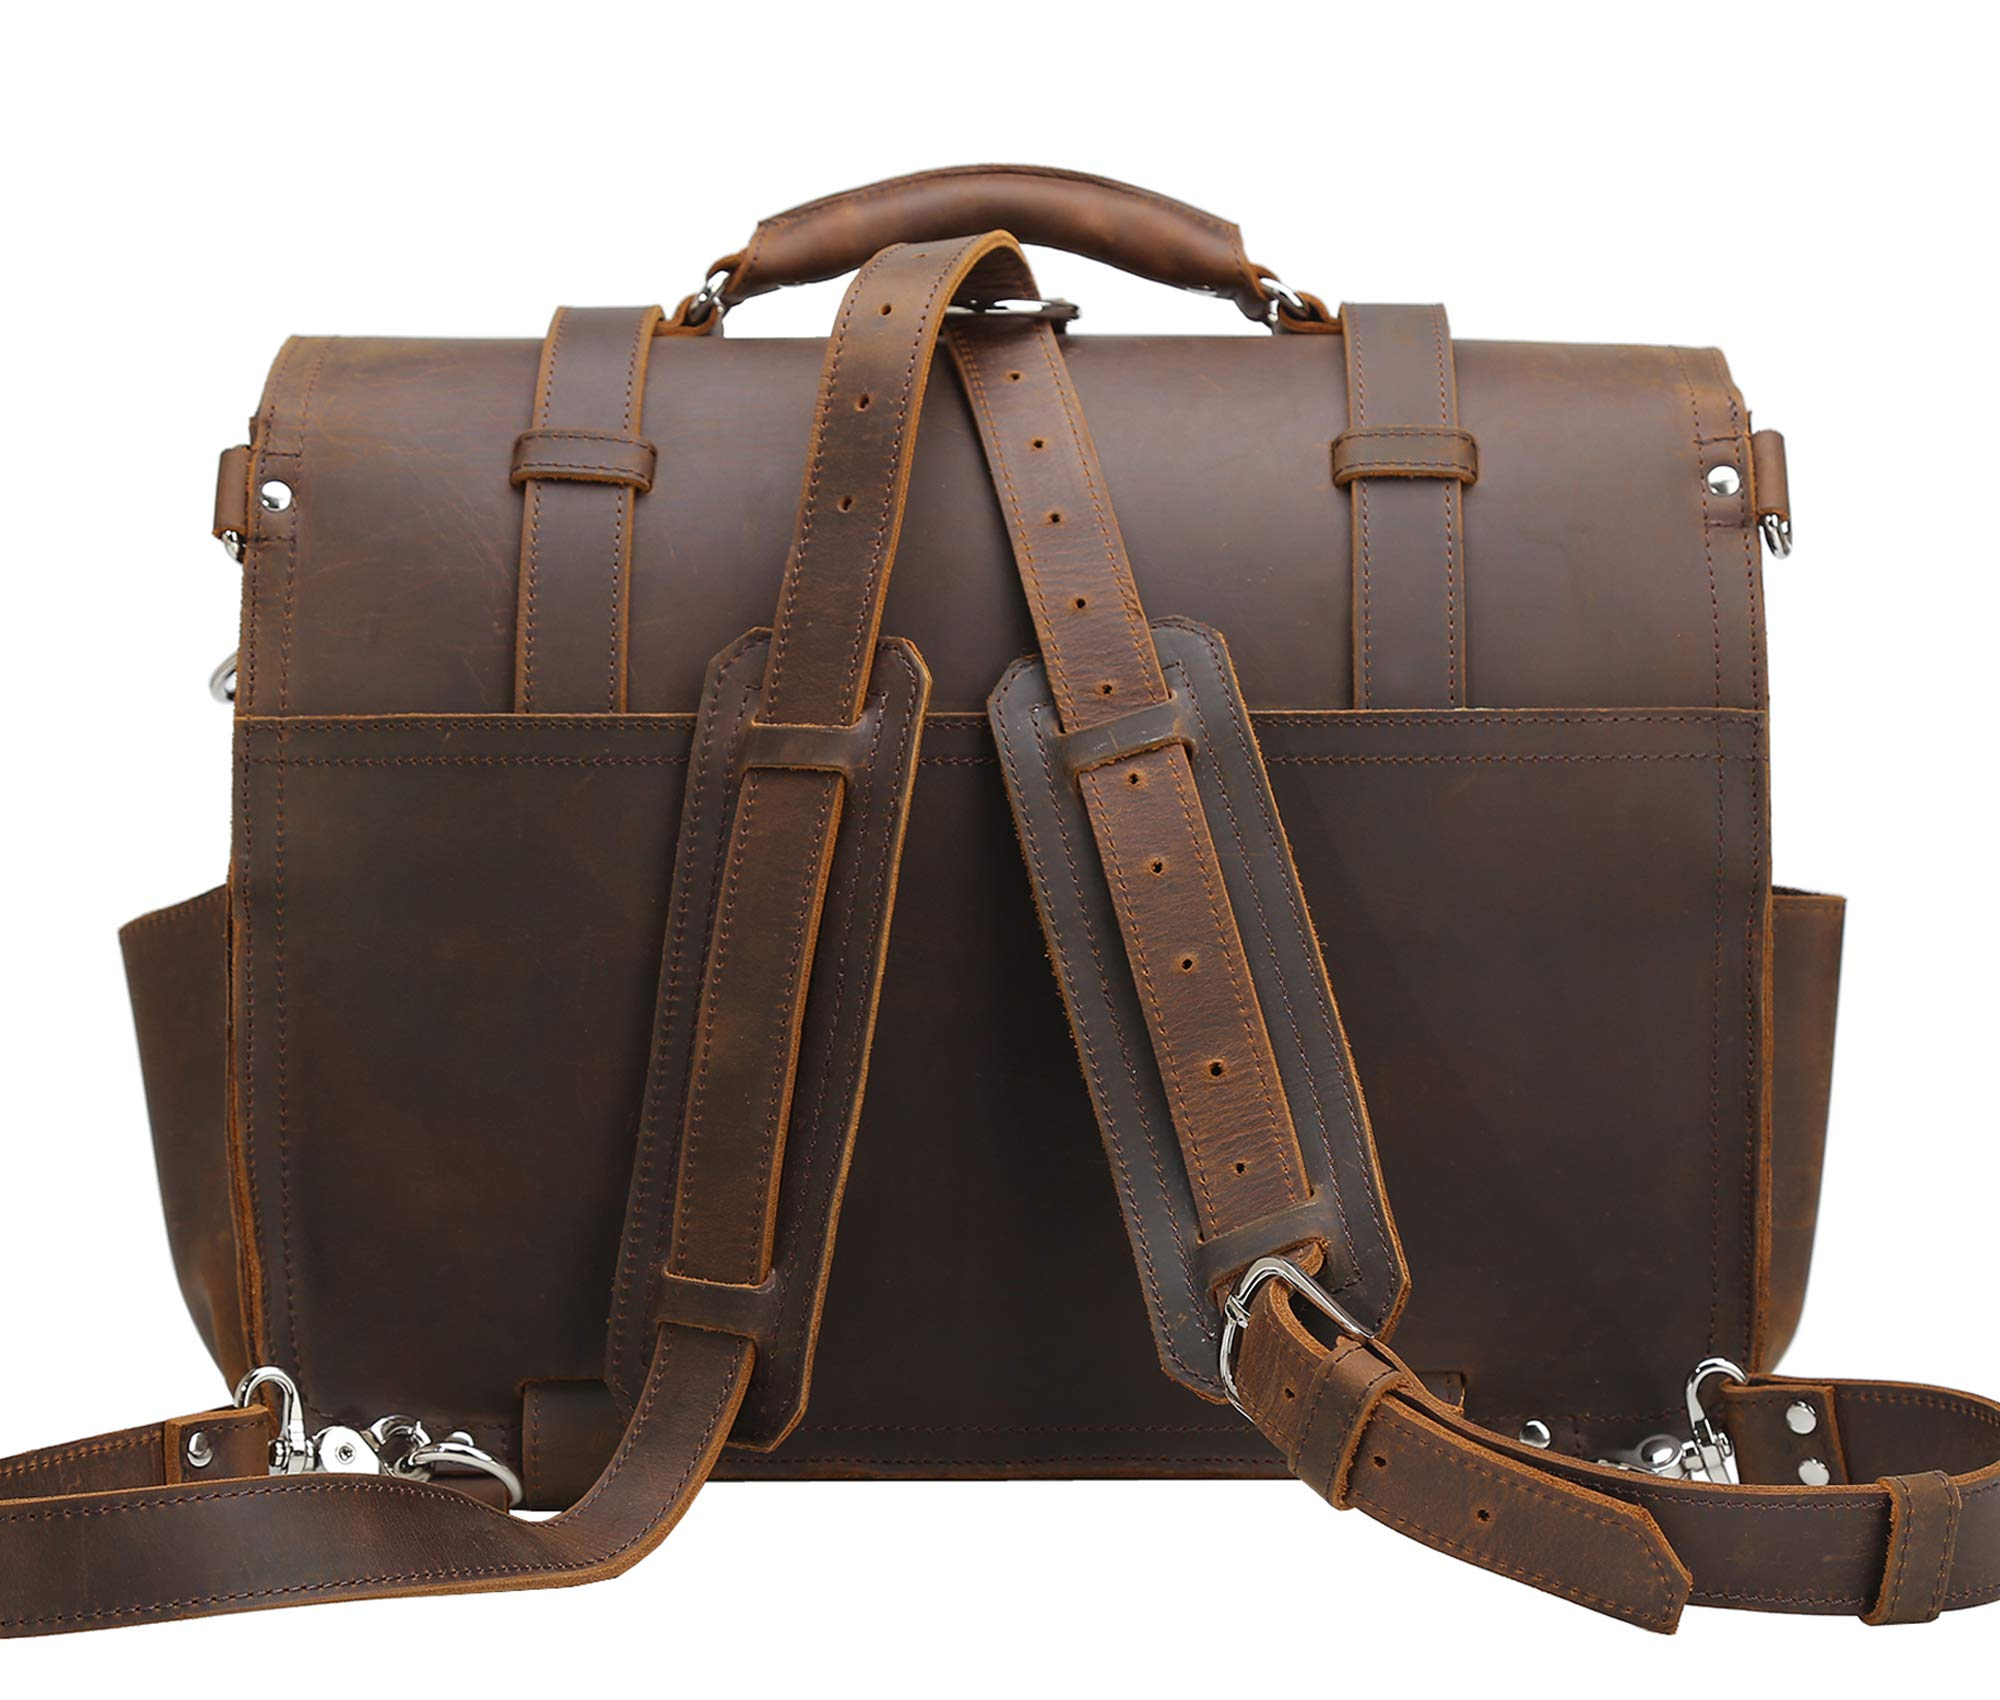 Texbo Men's 16 Inch Thick Cowhide Leather Briefcase Laptop Shoulder Messenger Bag Tote by Texbo (Image #5)